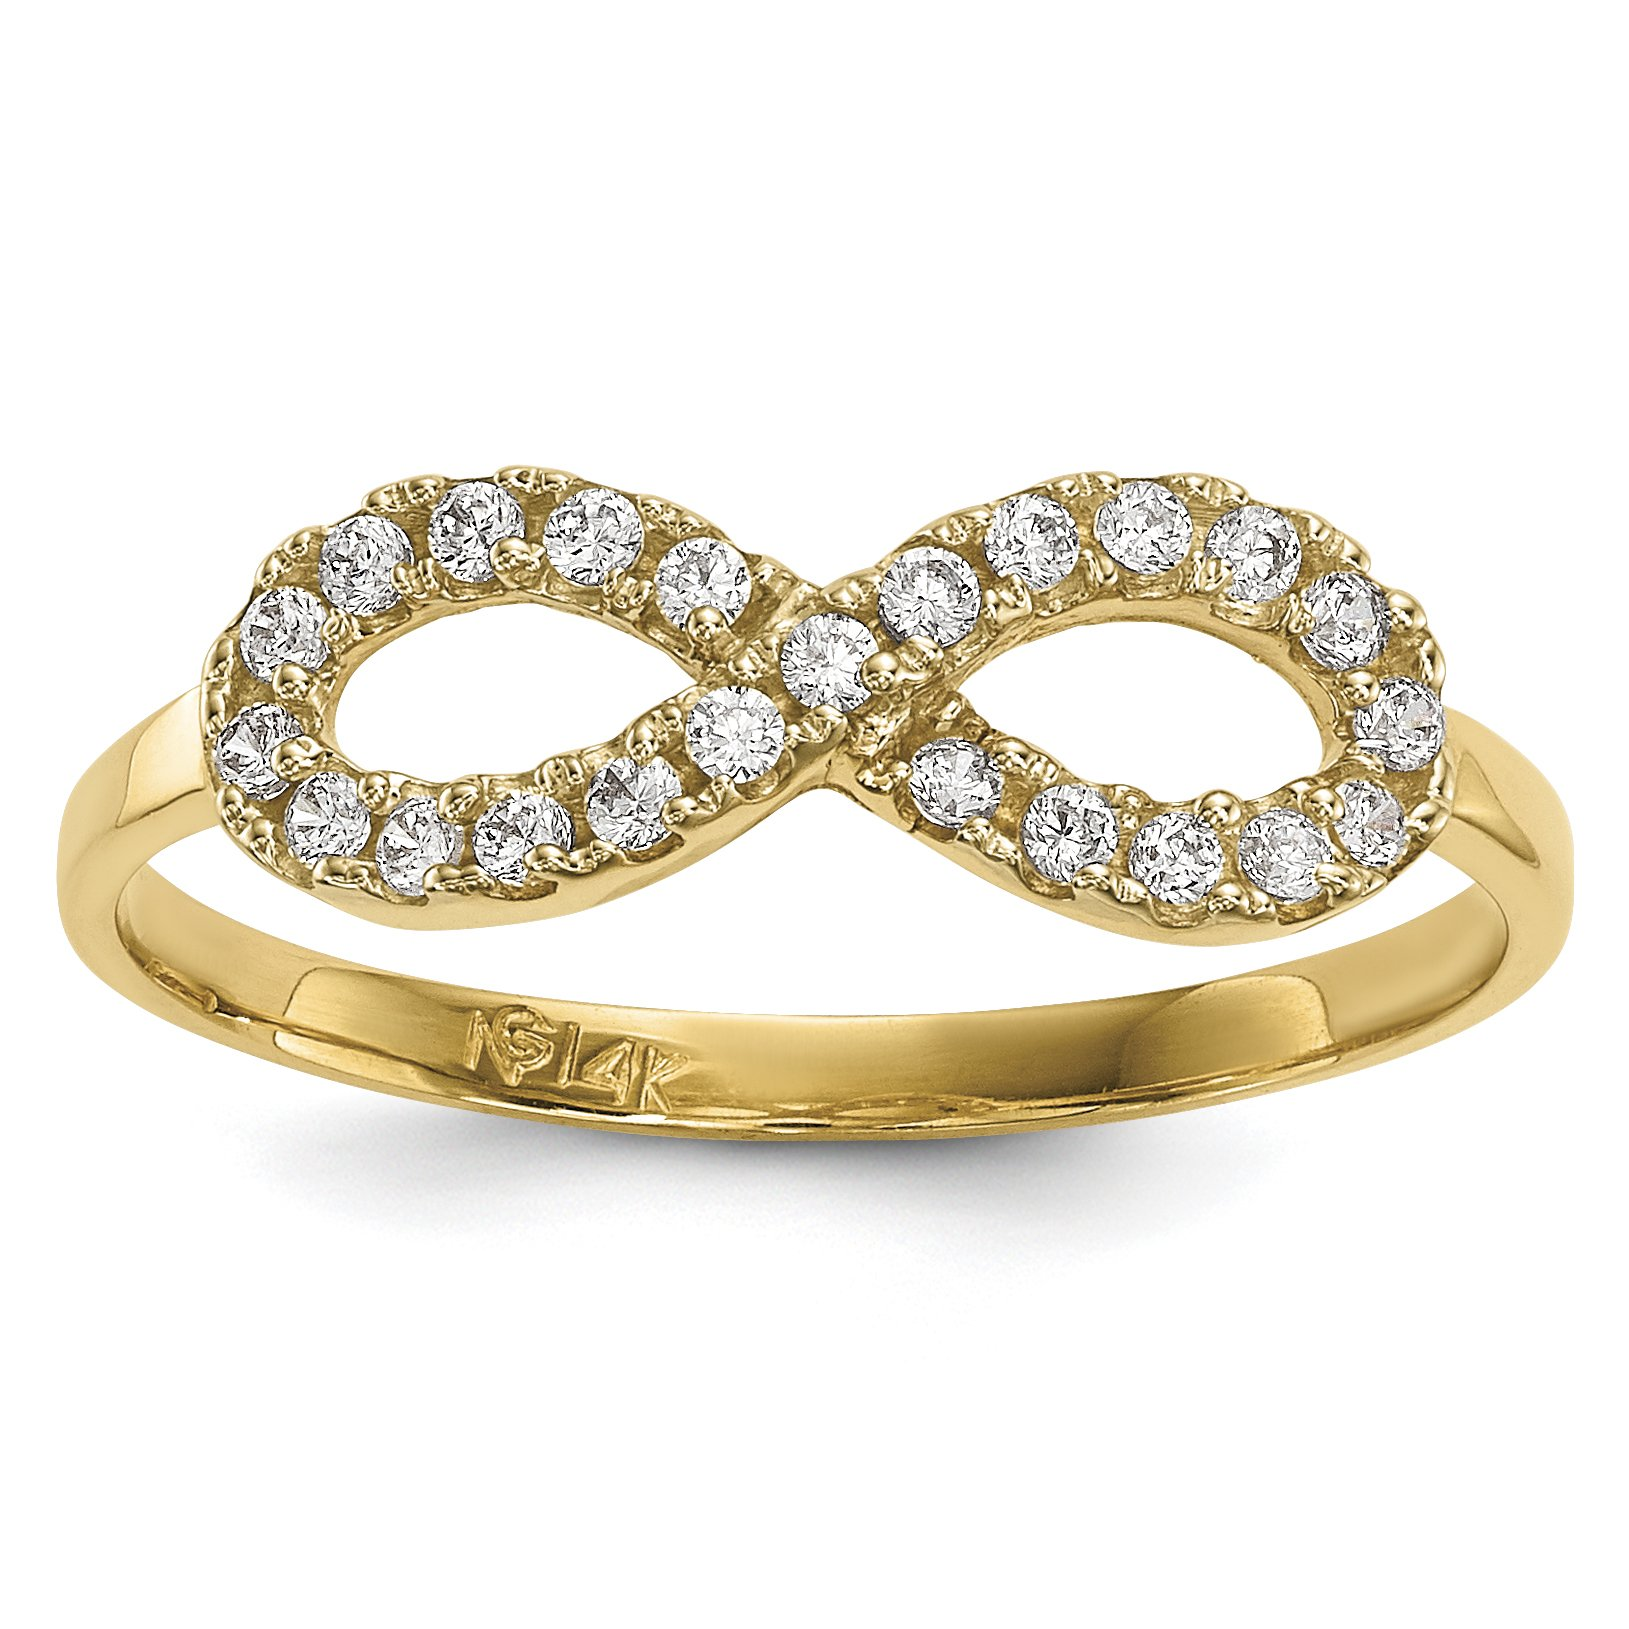 ICE CARATS 14k Yellow Gold Cubic Zirconia Cz Infinity Symbol Band Ring Size 7.00 Fine Jewelry Gift Set For Women Heart